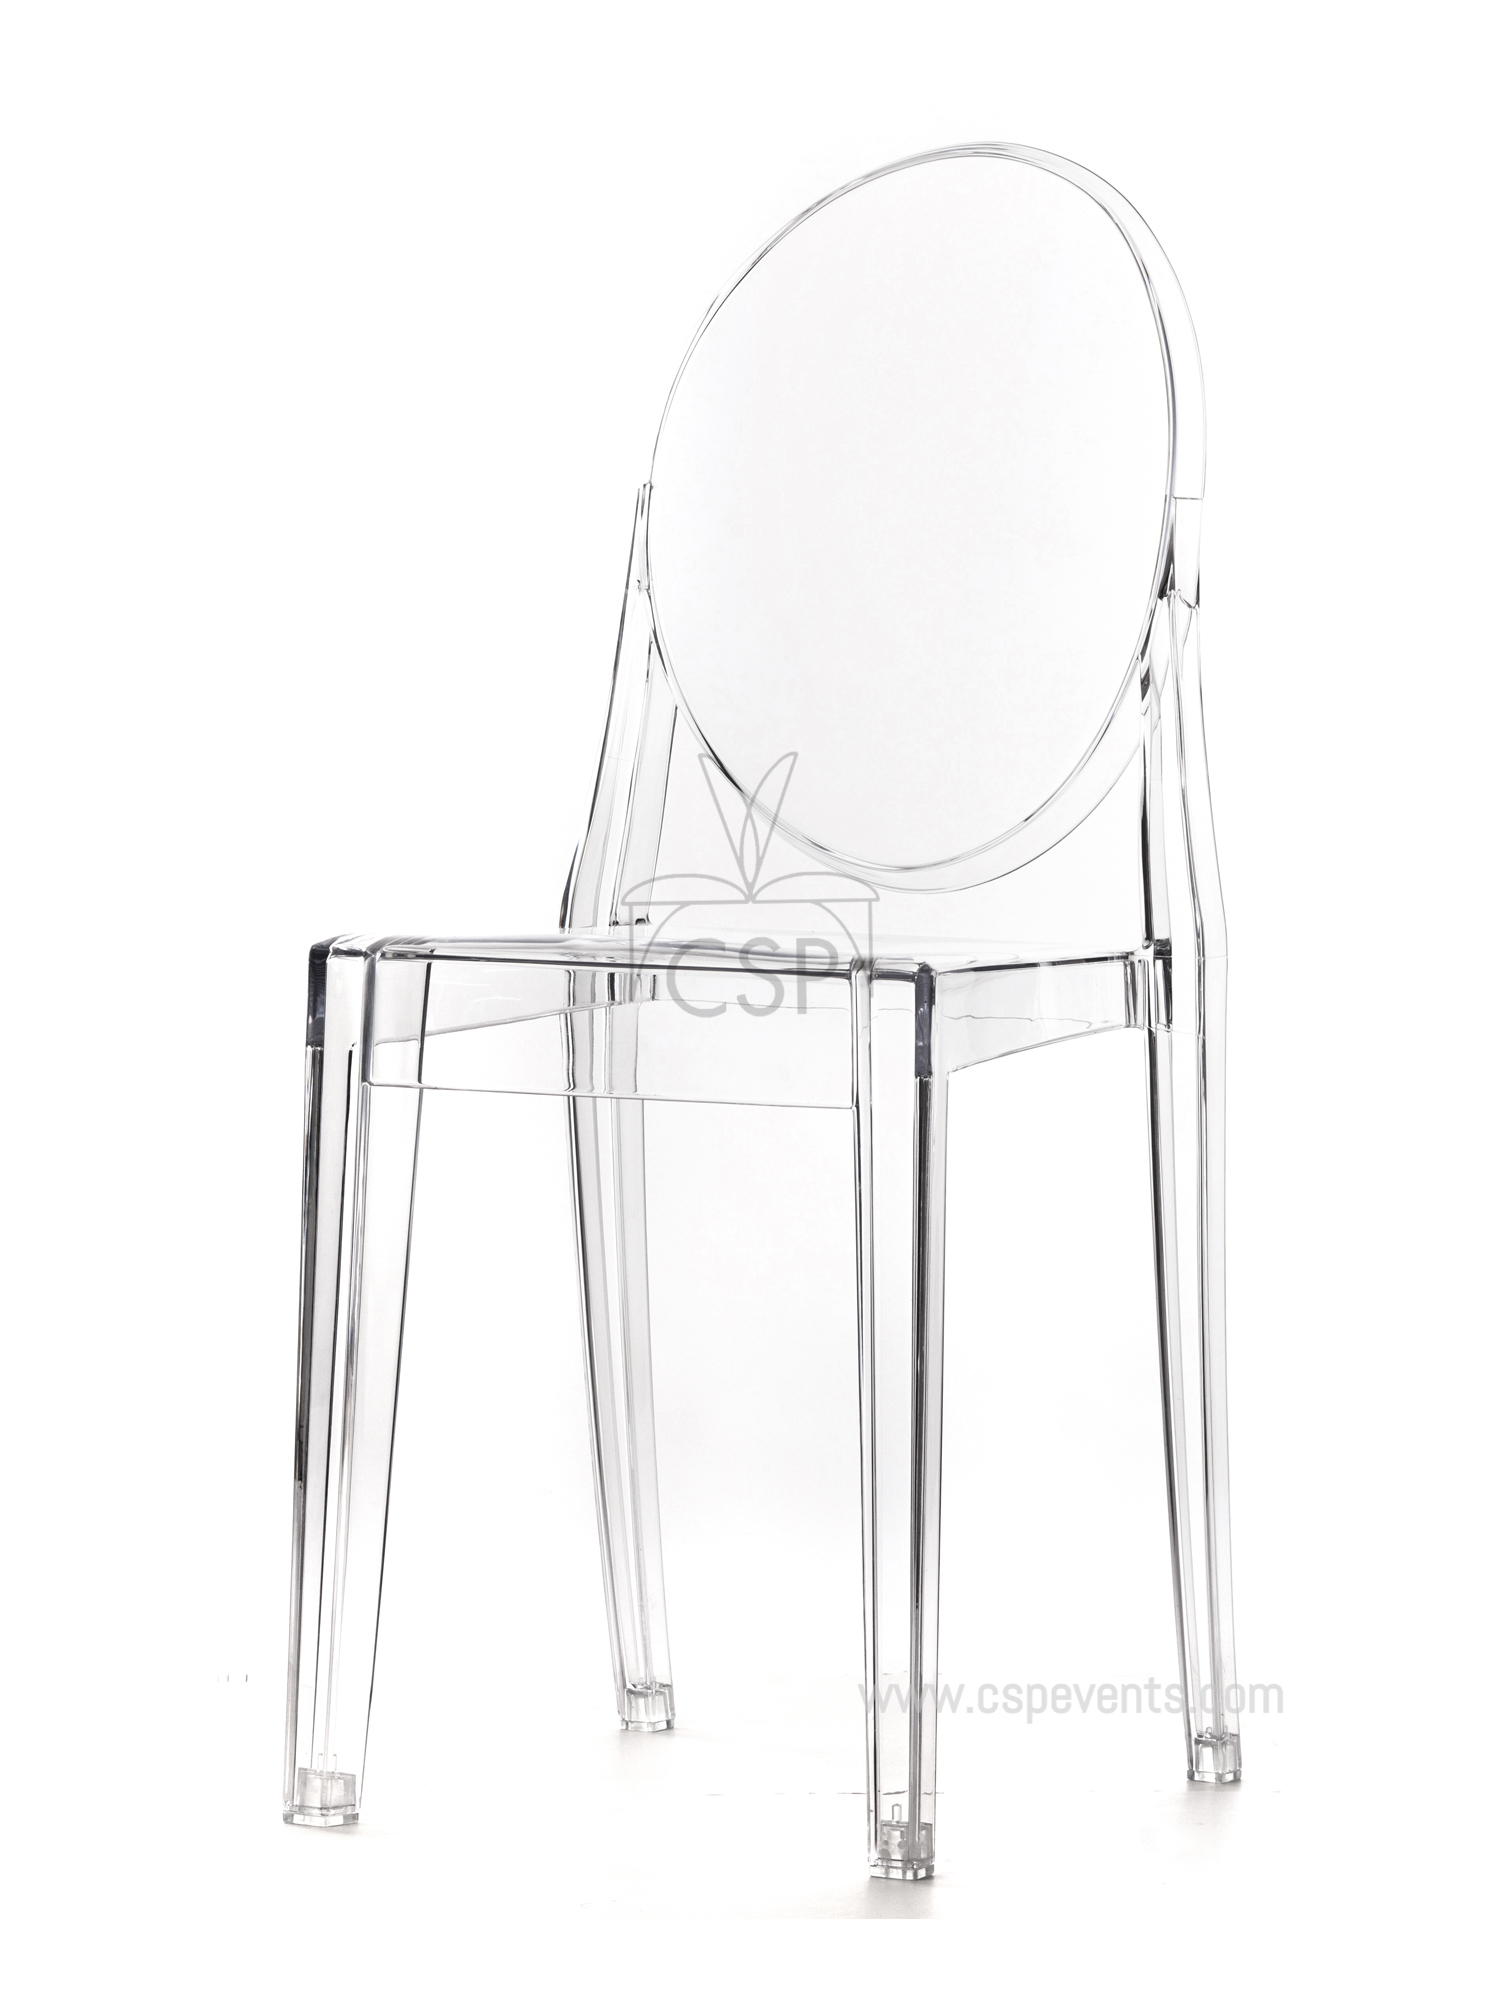 polycarbonate kage chair with no arm csp